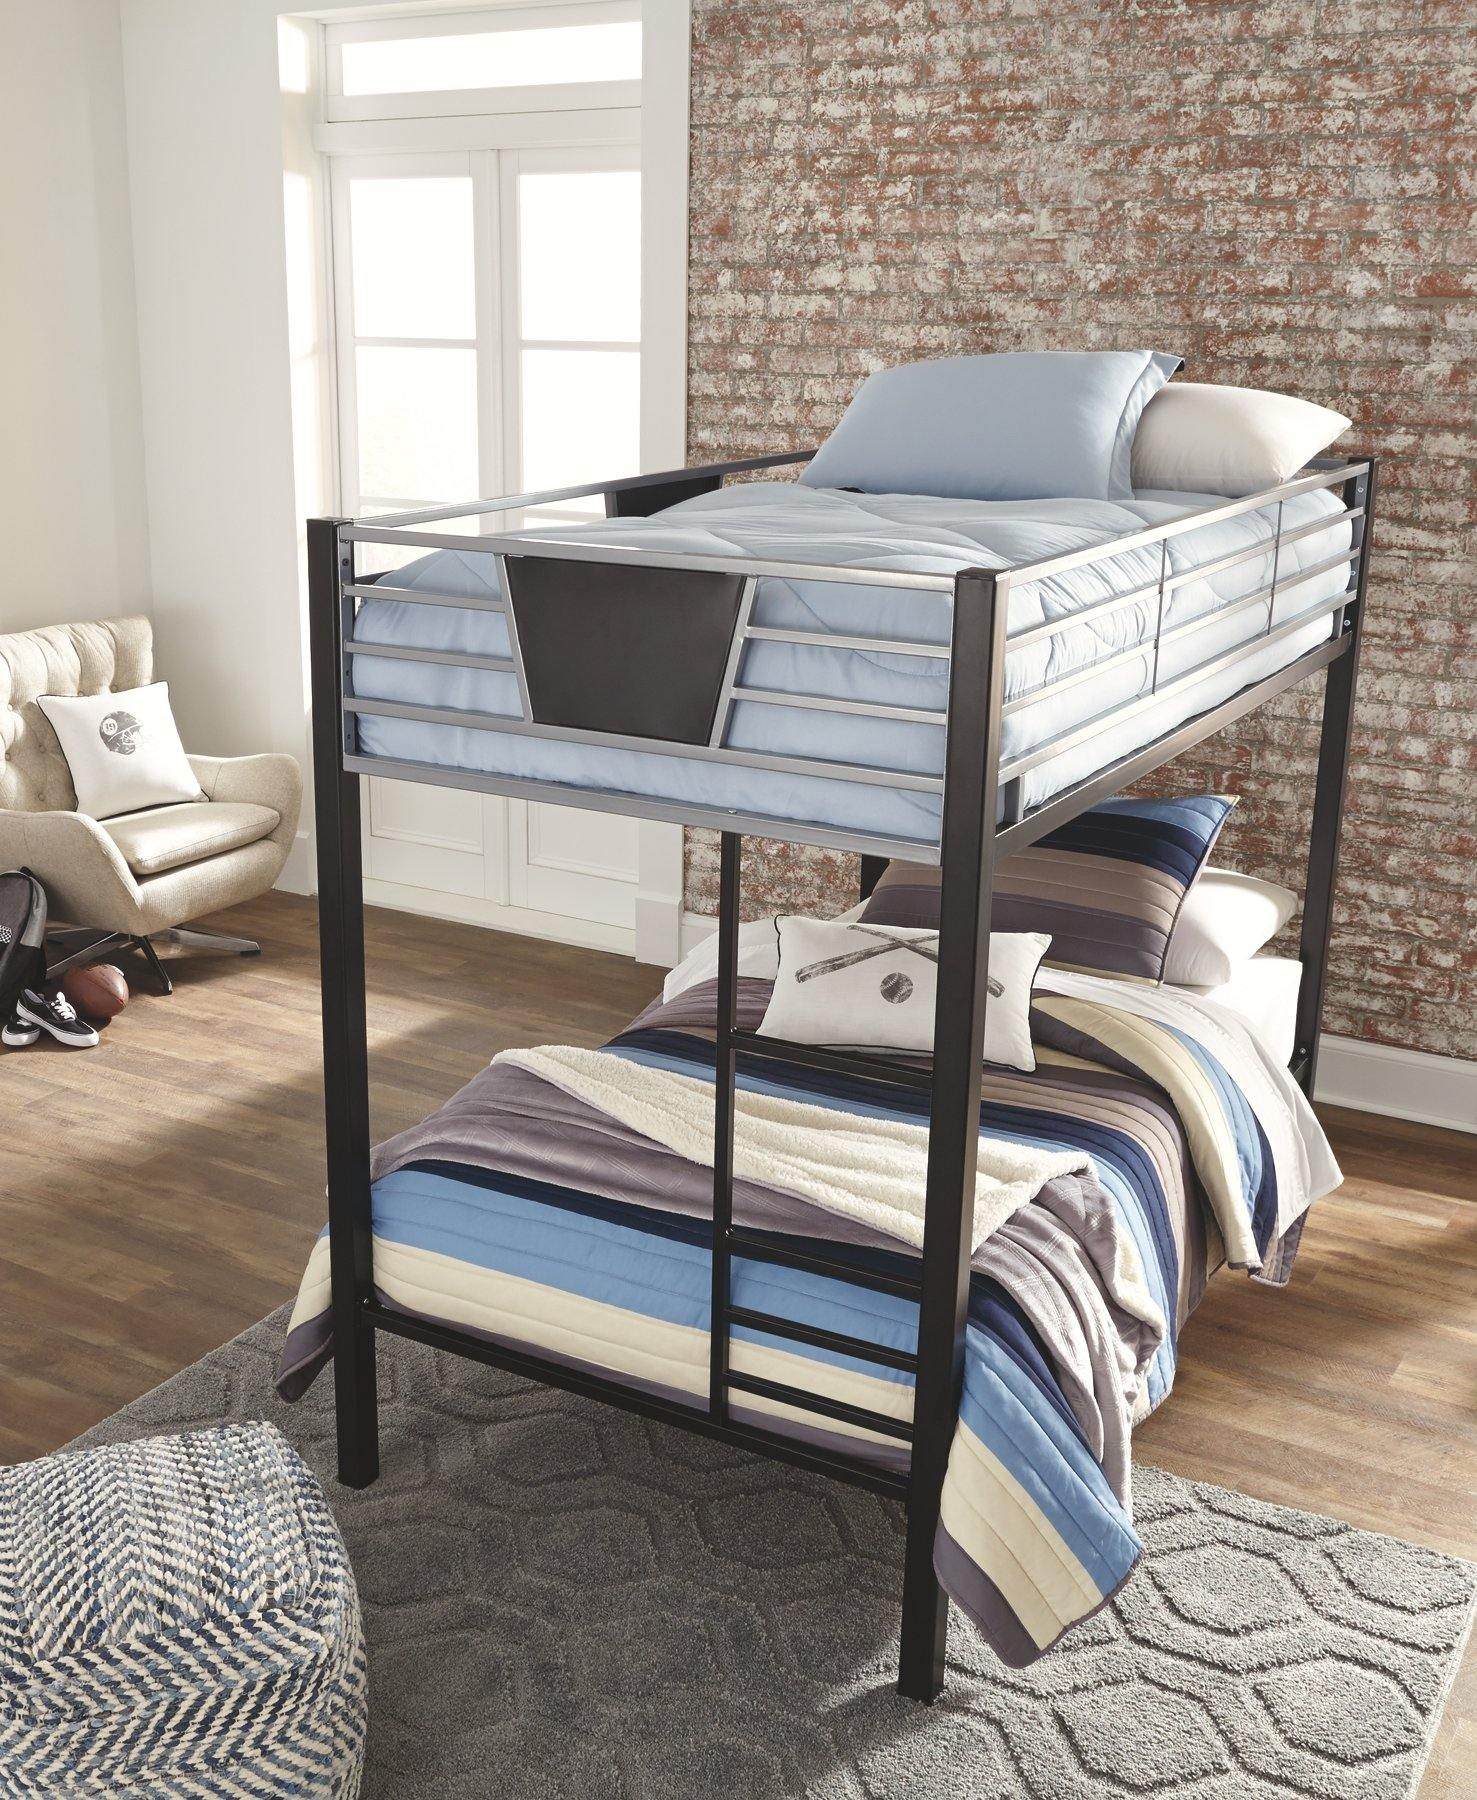 Dinsmore Twin over Twin Bunk Bed with Ladder B106-59 Youth Beds By ashley - sofafair.com